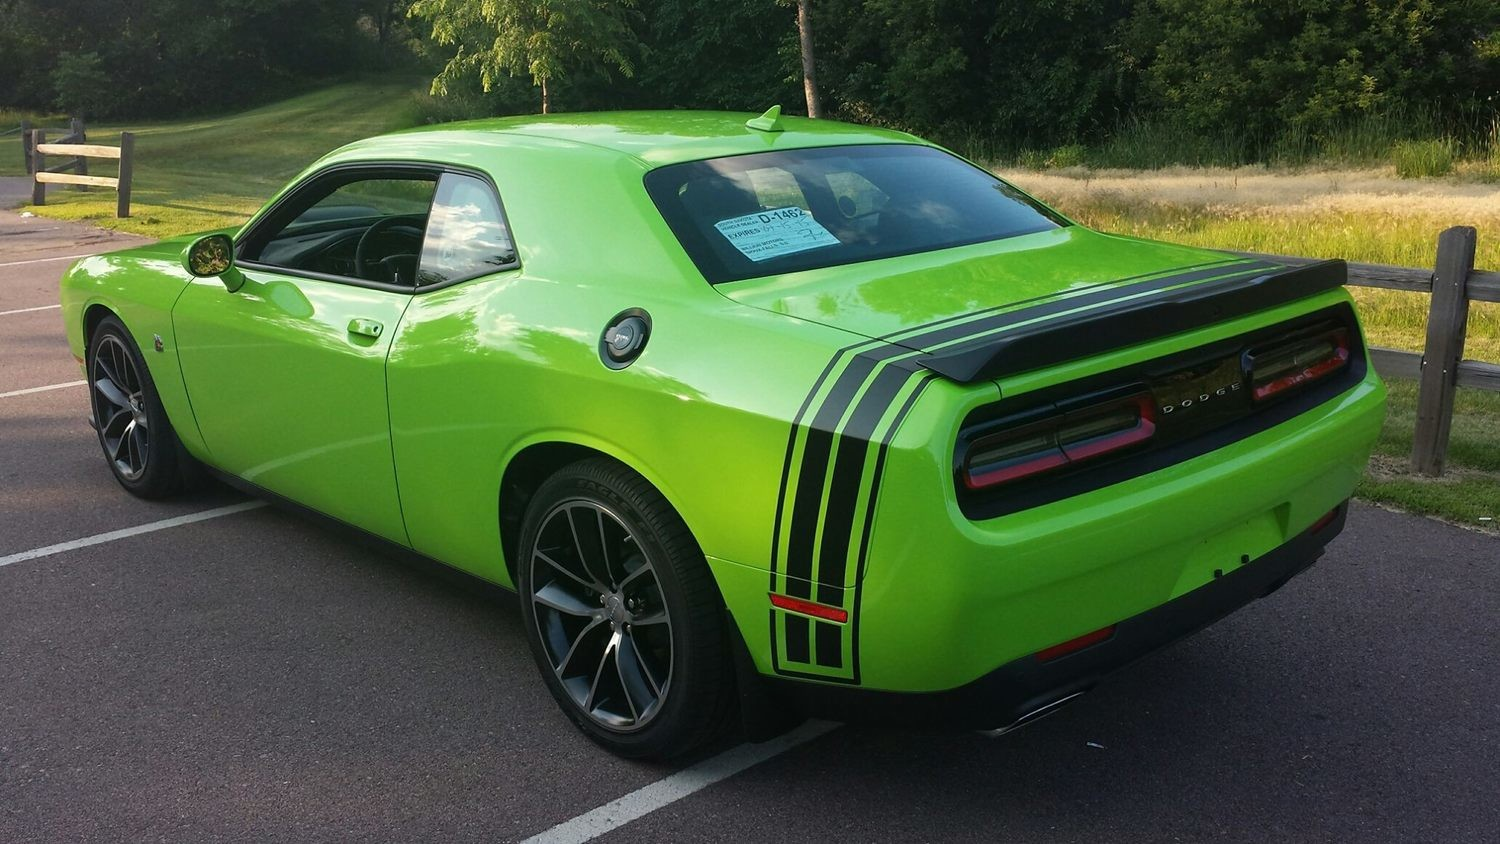 2008 - Up Dodge Challenger Bumble Bee Style Tail Stripes